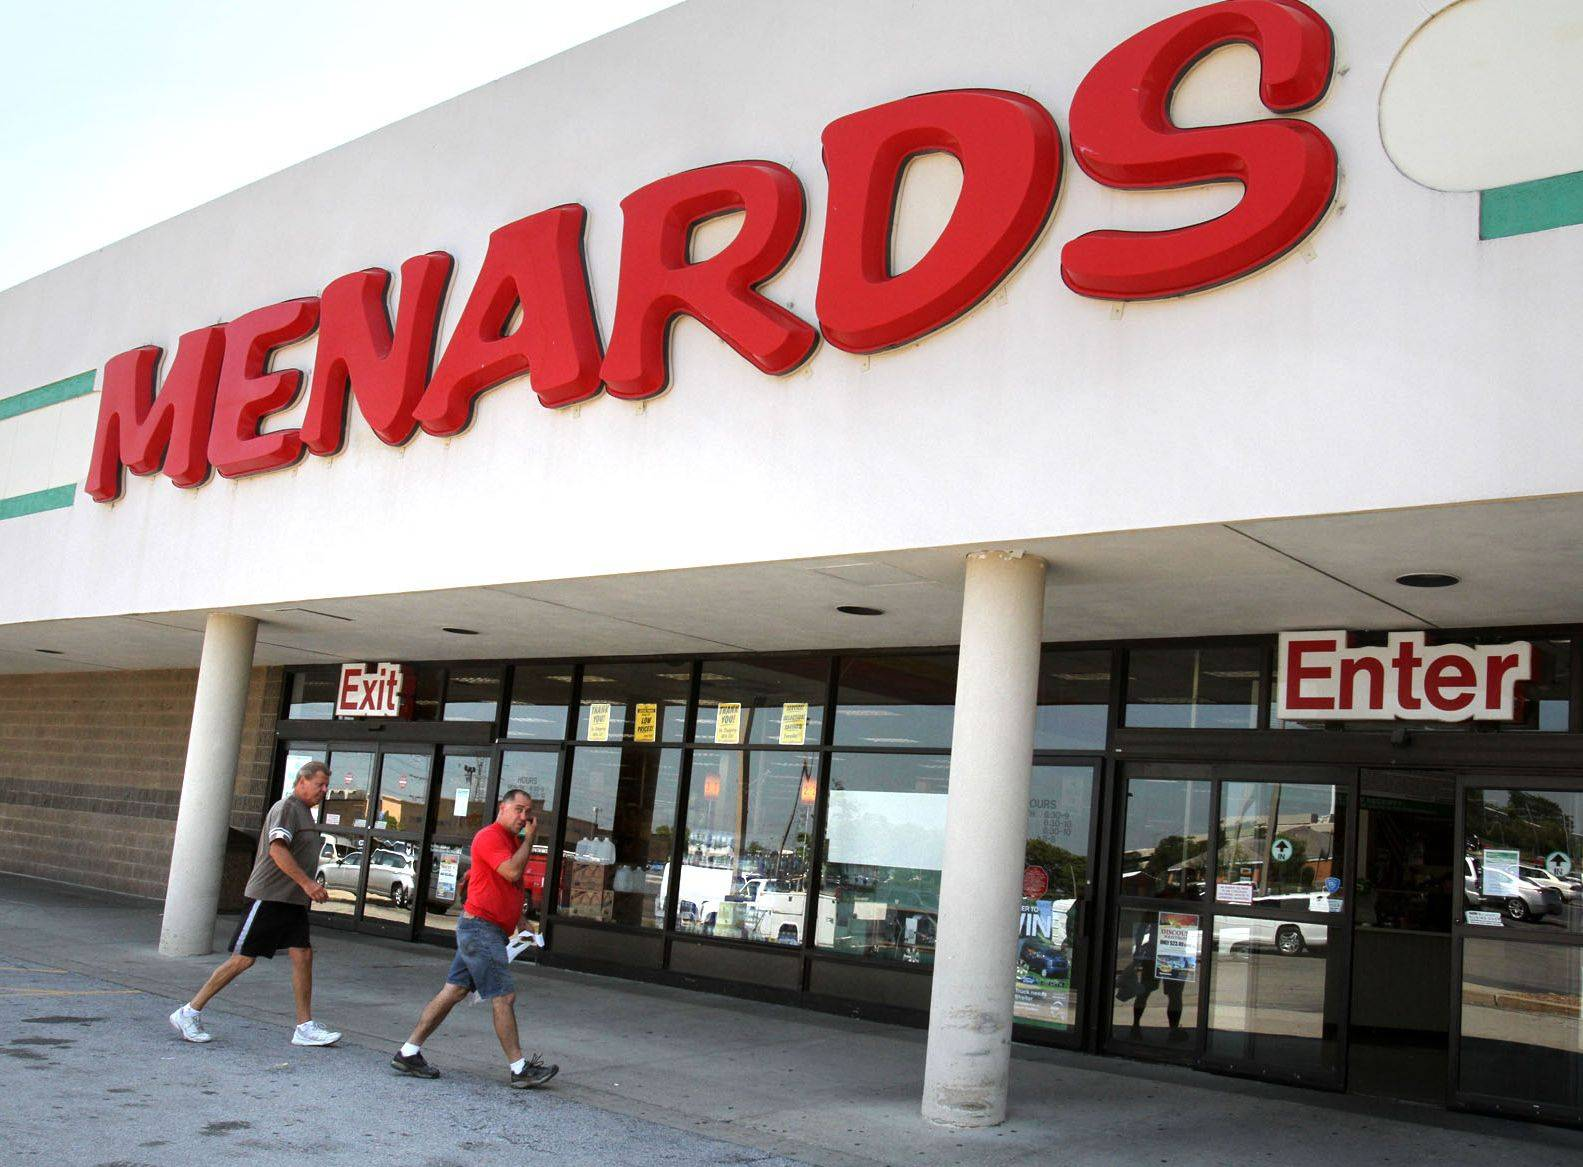 The Menards store, which has operated for about 20 years at the Oak Creek Plaza shopping center in Mundelein, will close for good on Friday.